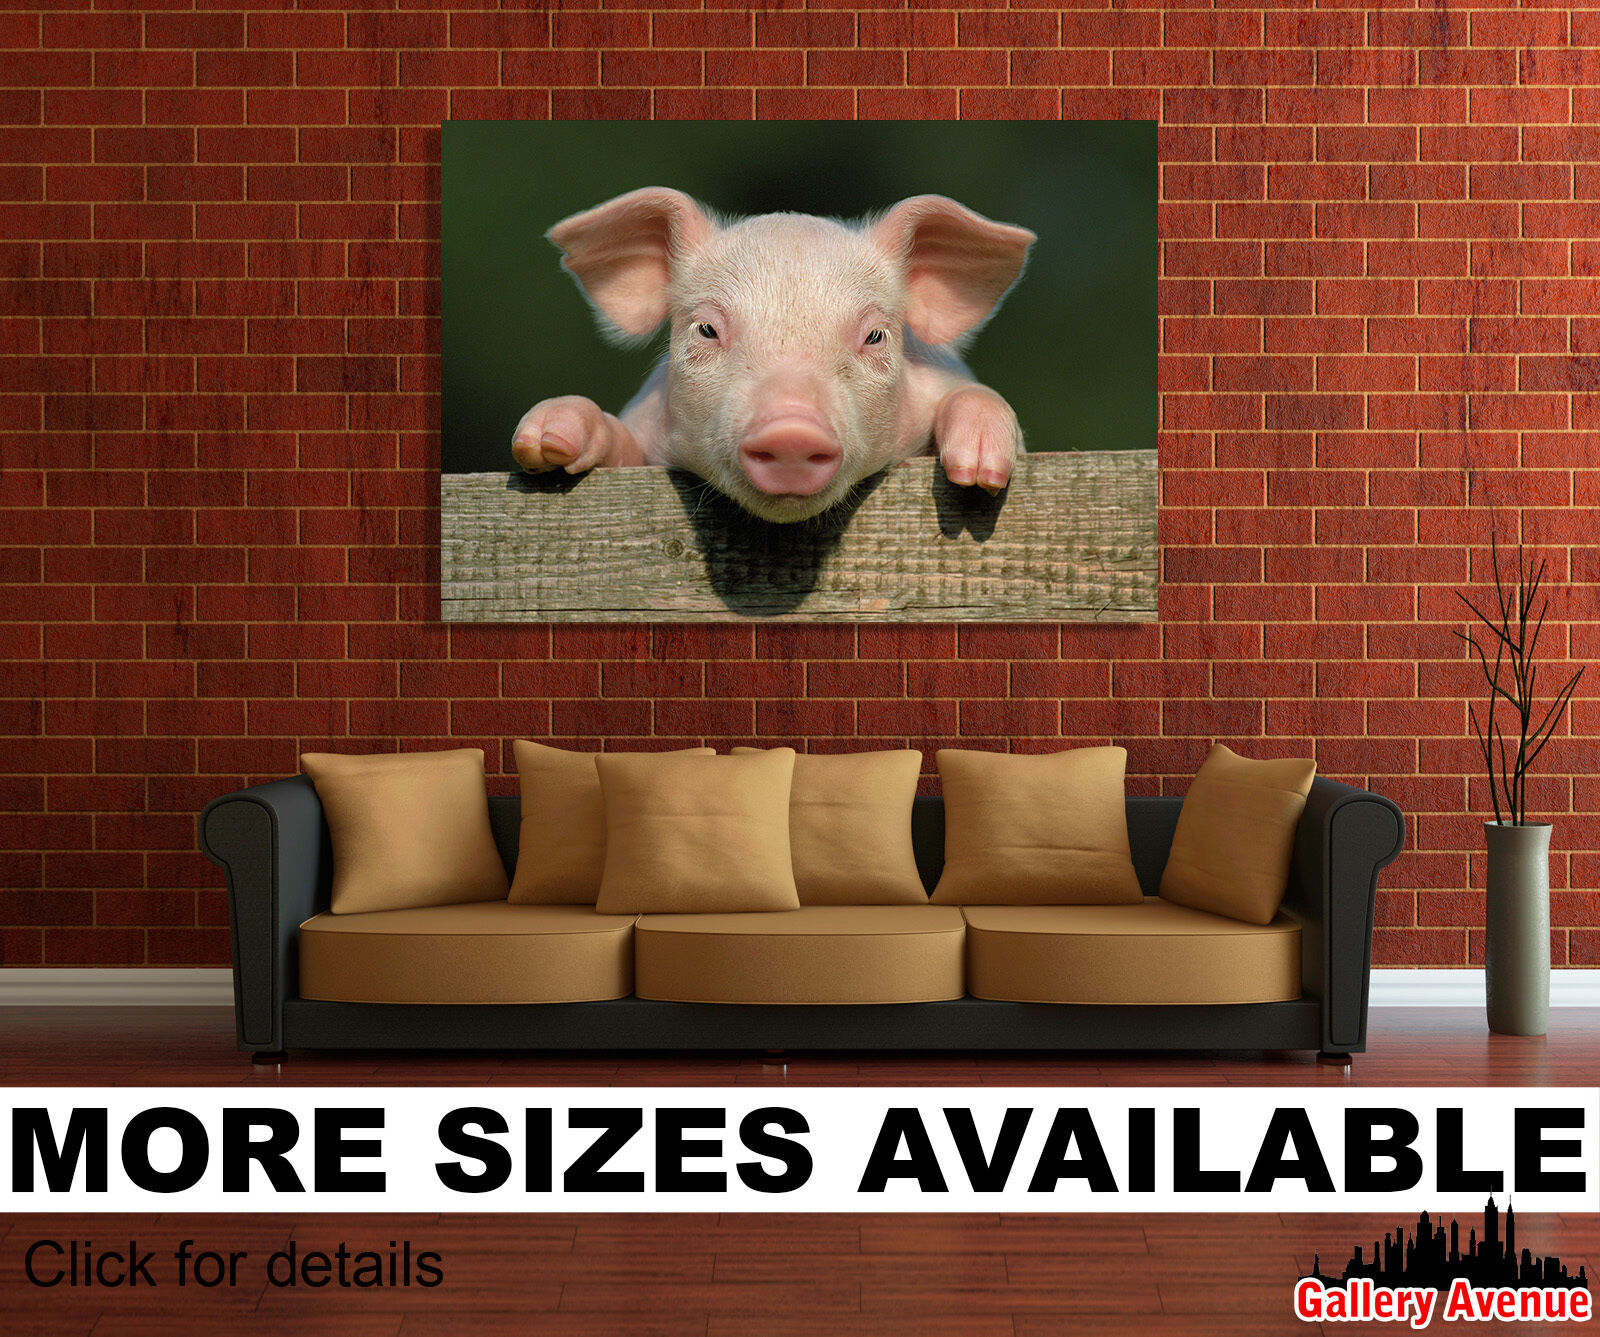 Wall Art Canvas Picture Print - Cute Funny Little Pig, Piglet 3 3.2